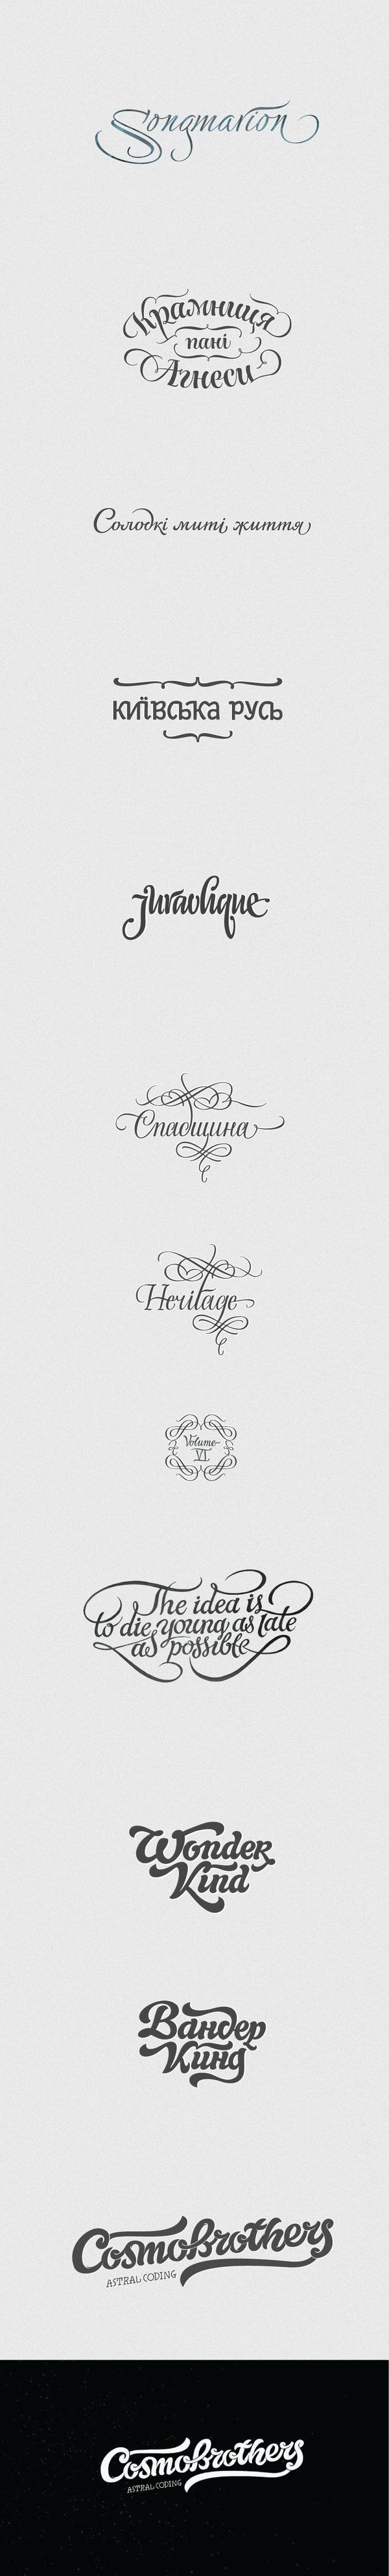 Typography Served  Some logos & letterings 2011-2012  Vika and Vita Lopukhiny  INFO  SHARE  by   Vika and Vi